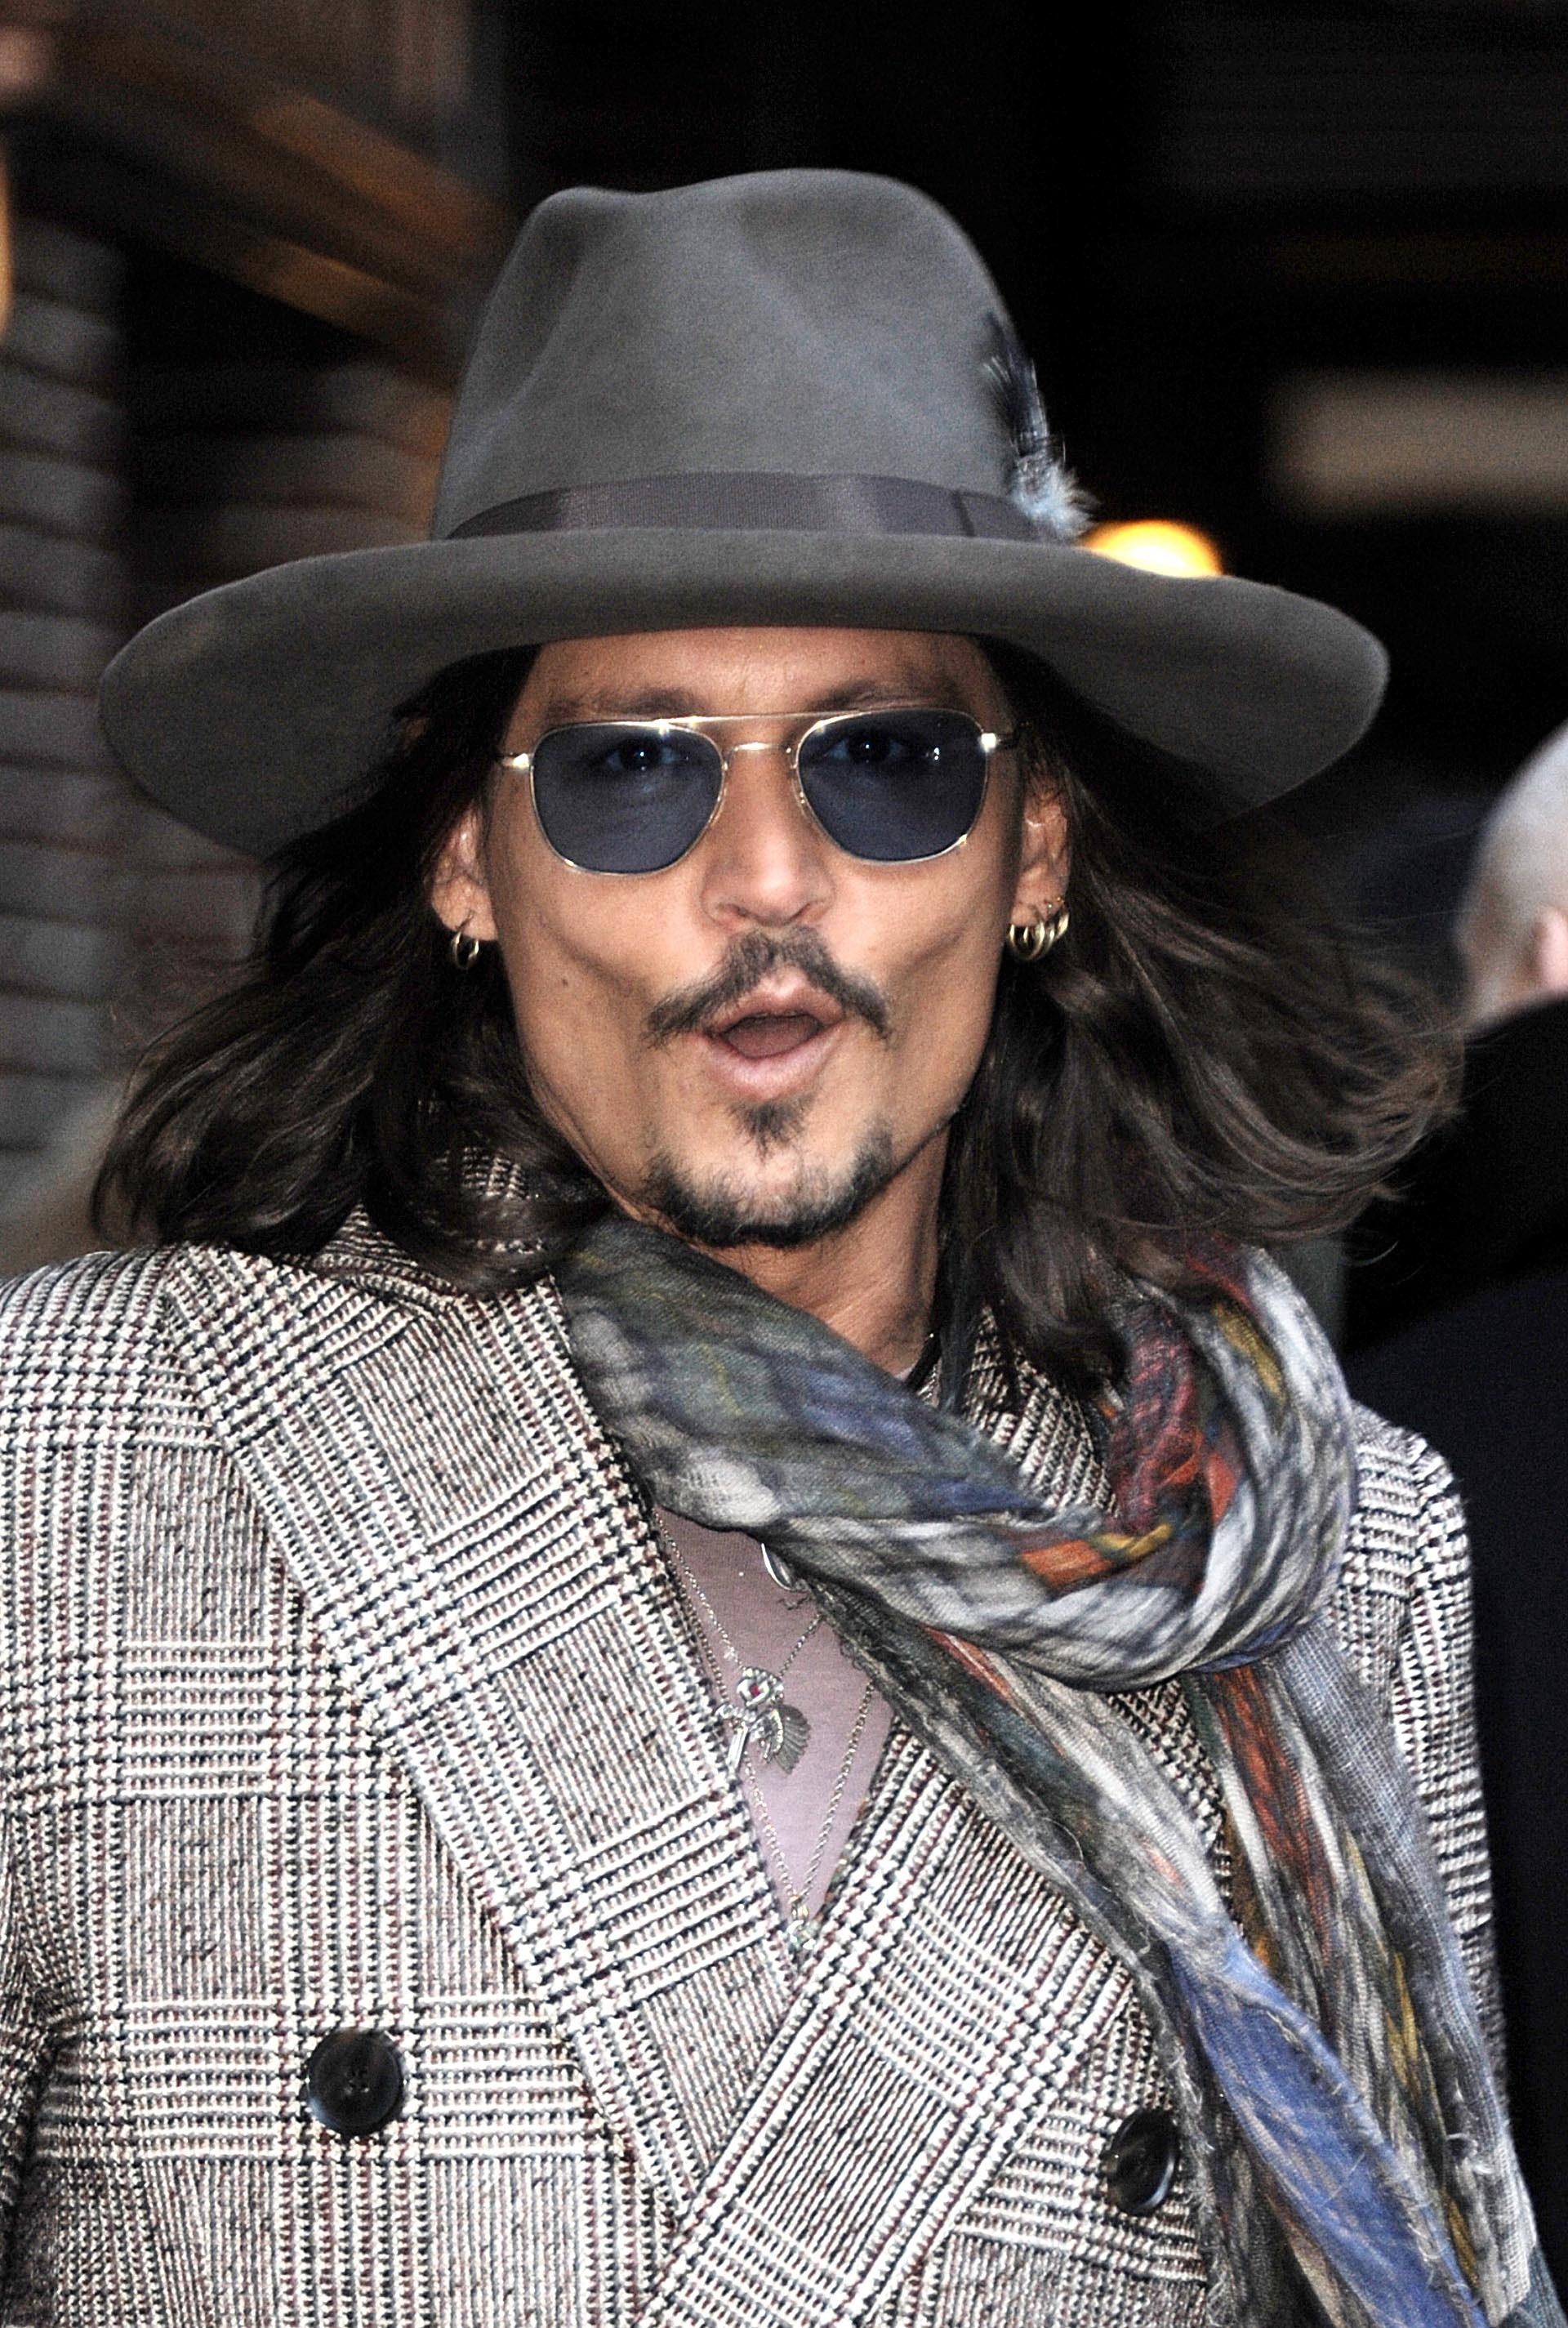 Johnny Depp shocked